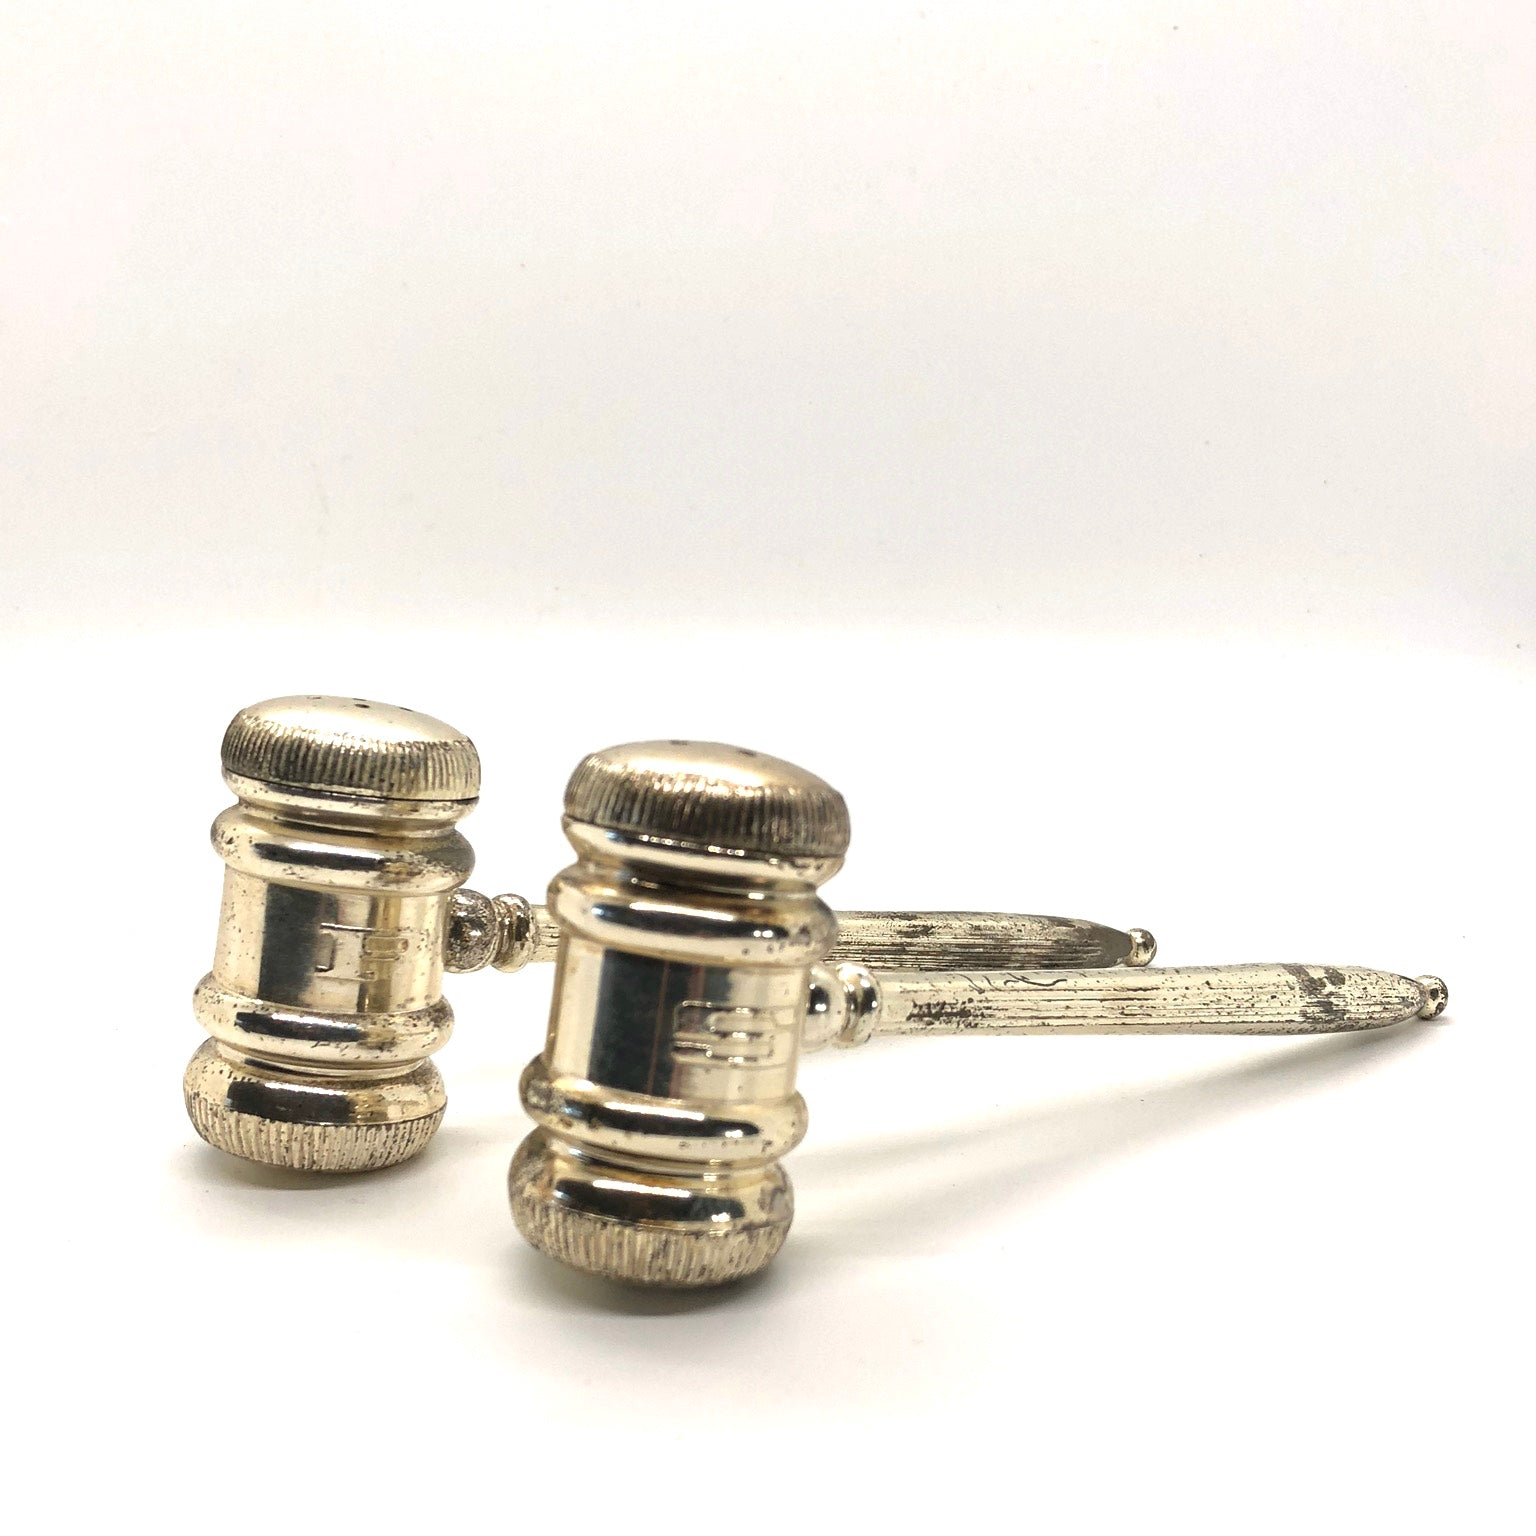 Gavel Salt & Pepper Shakers